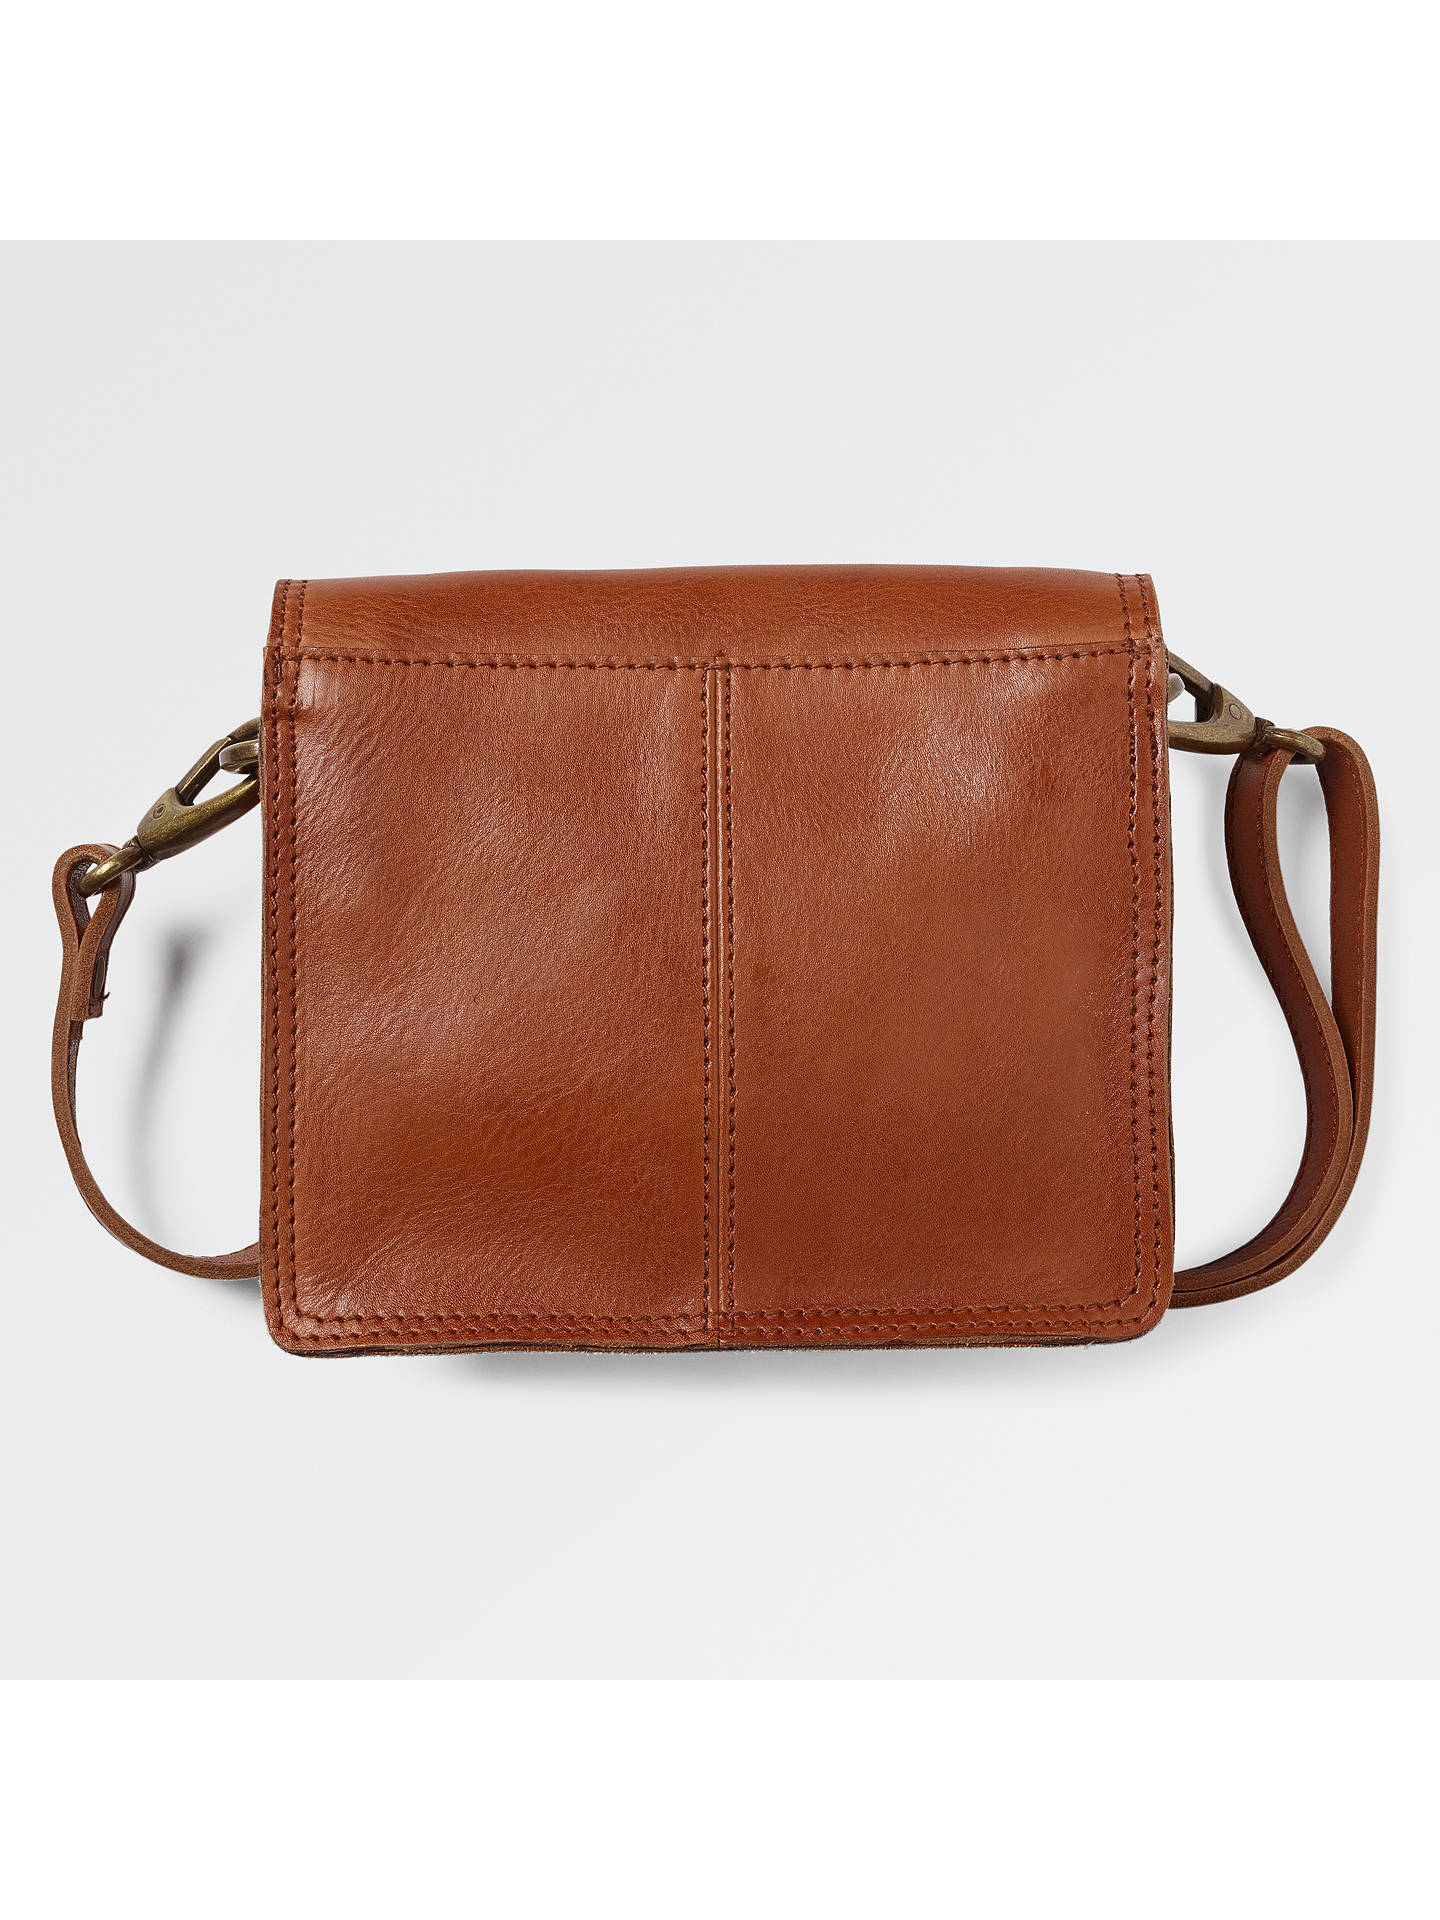 686404a290 ... Buy Fat Face Small Leather Cross Body Bag